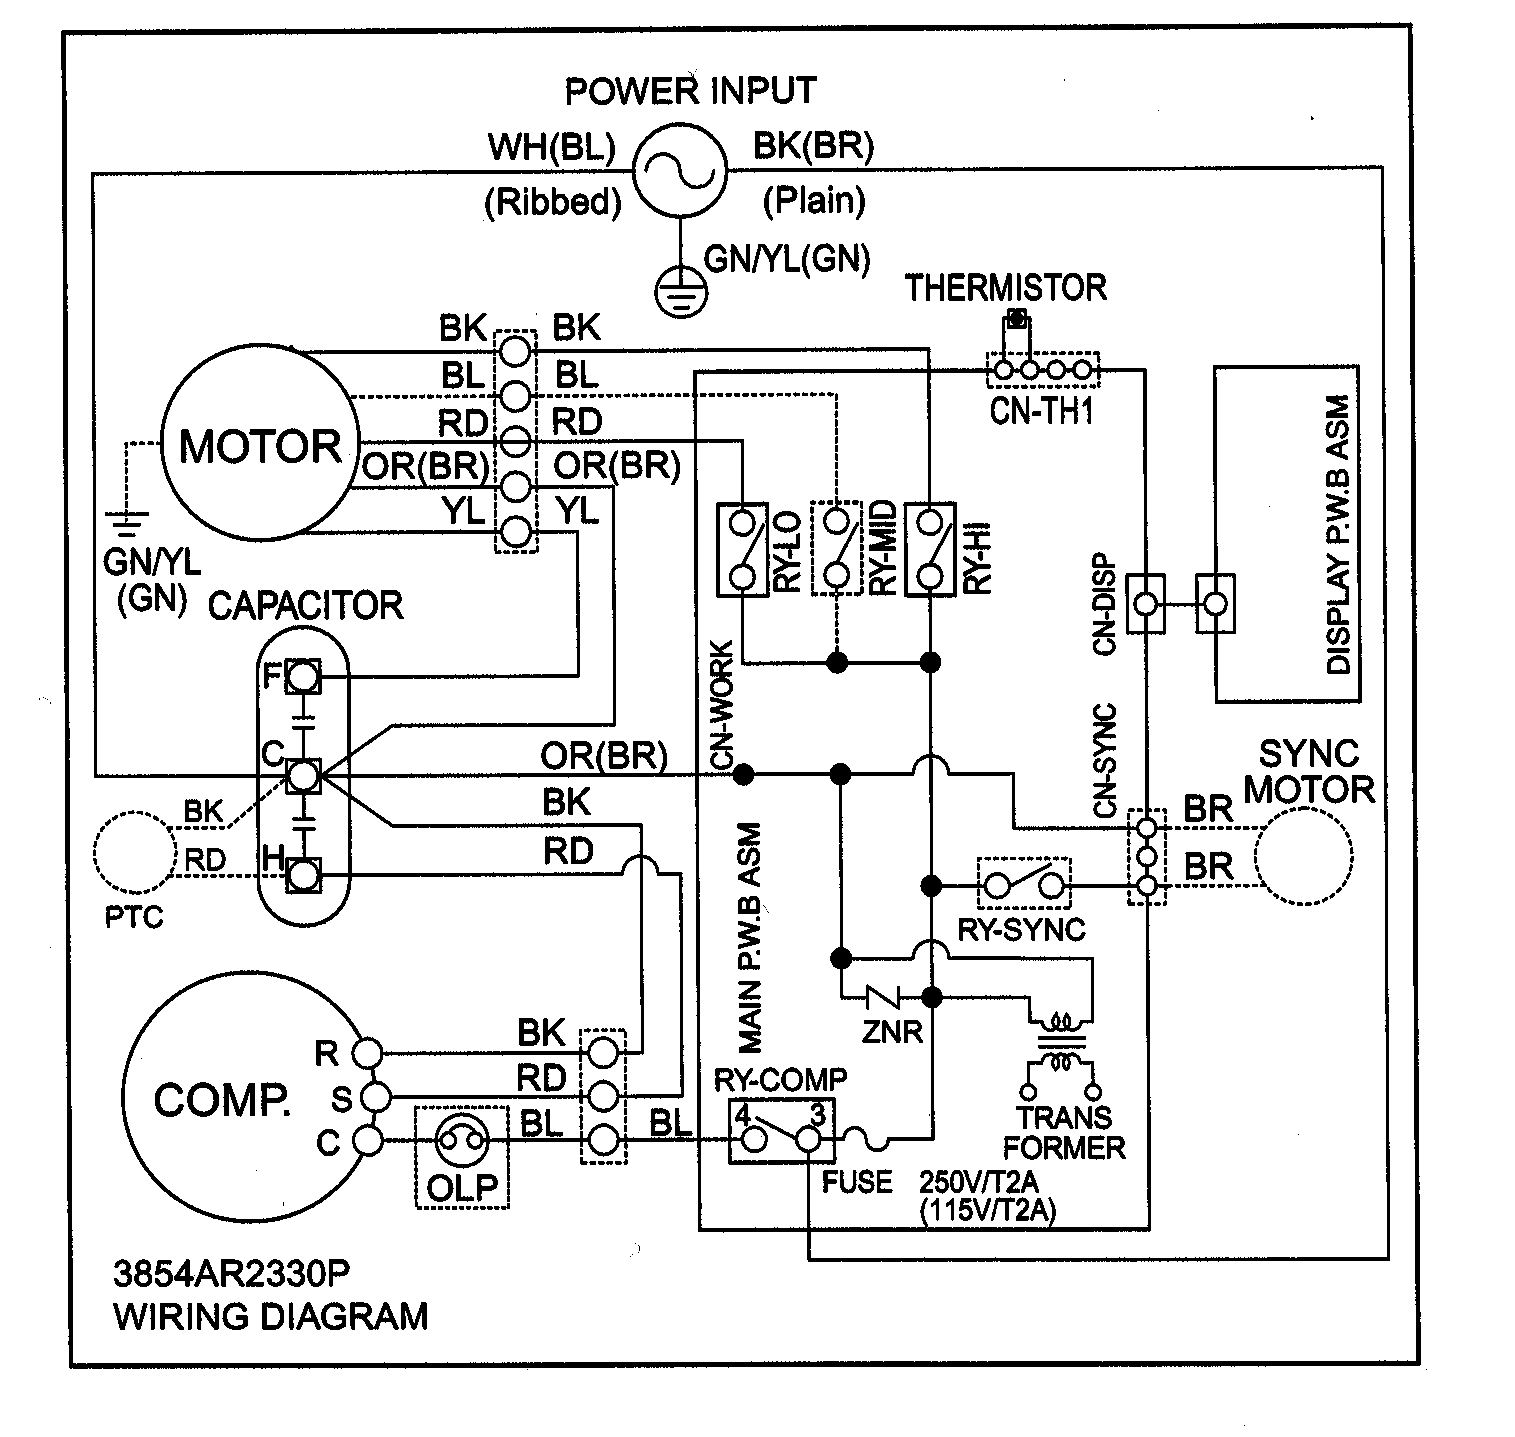 [DIAGRAM] Tappan Air Conditioner Wiring Diagram FULL